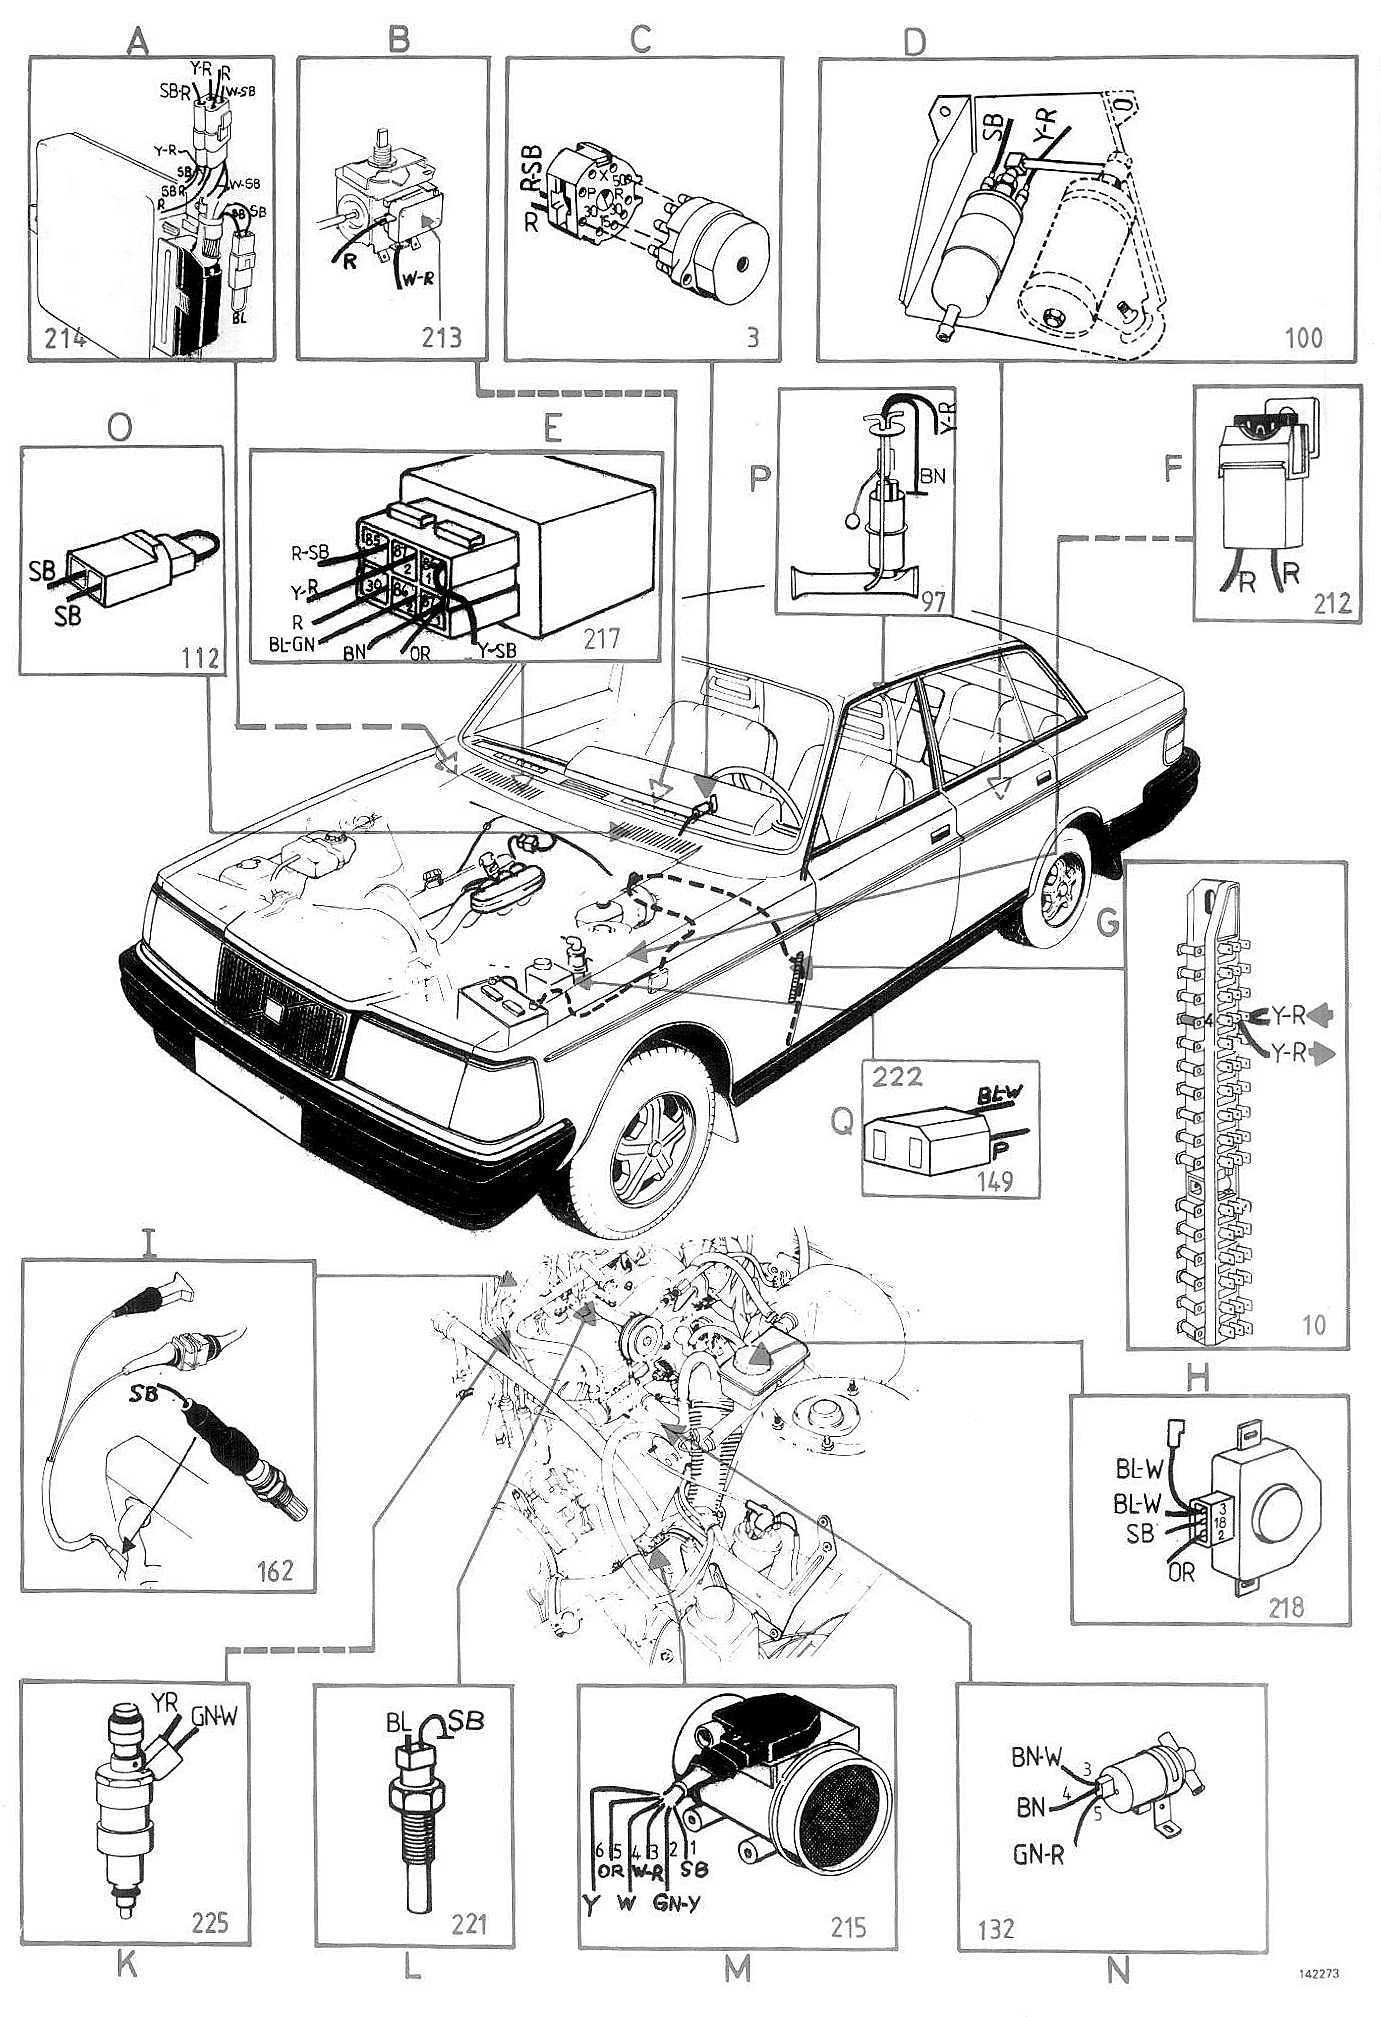 1993 volvo 240 wiring diagram 1993 image wiring 1987 volvo 240 dl fuel wiring diagram 1987 wiring diagrams on 1993 volvo 240 wiring